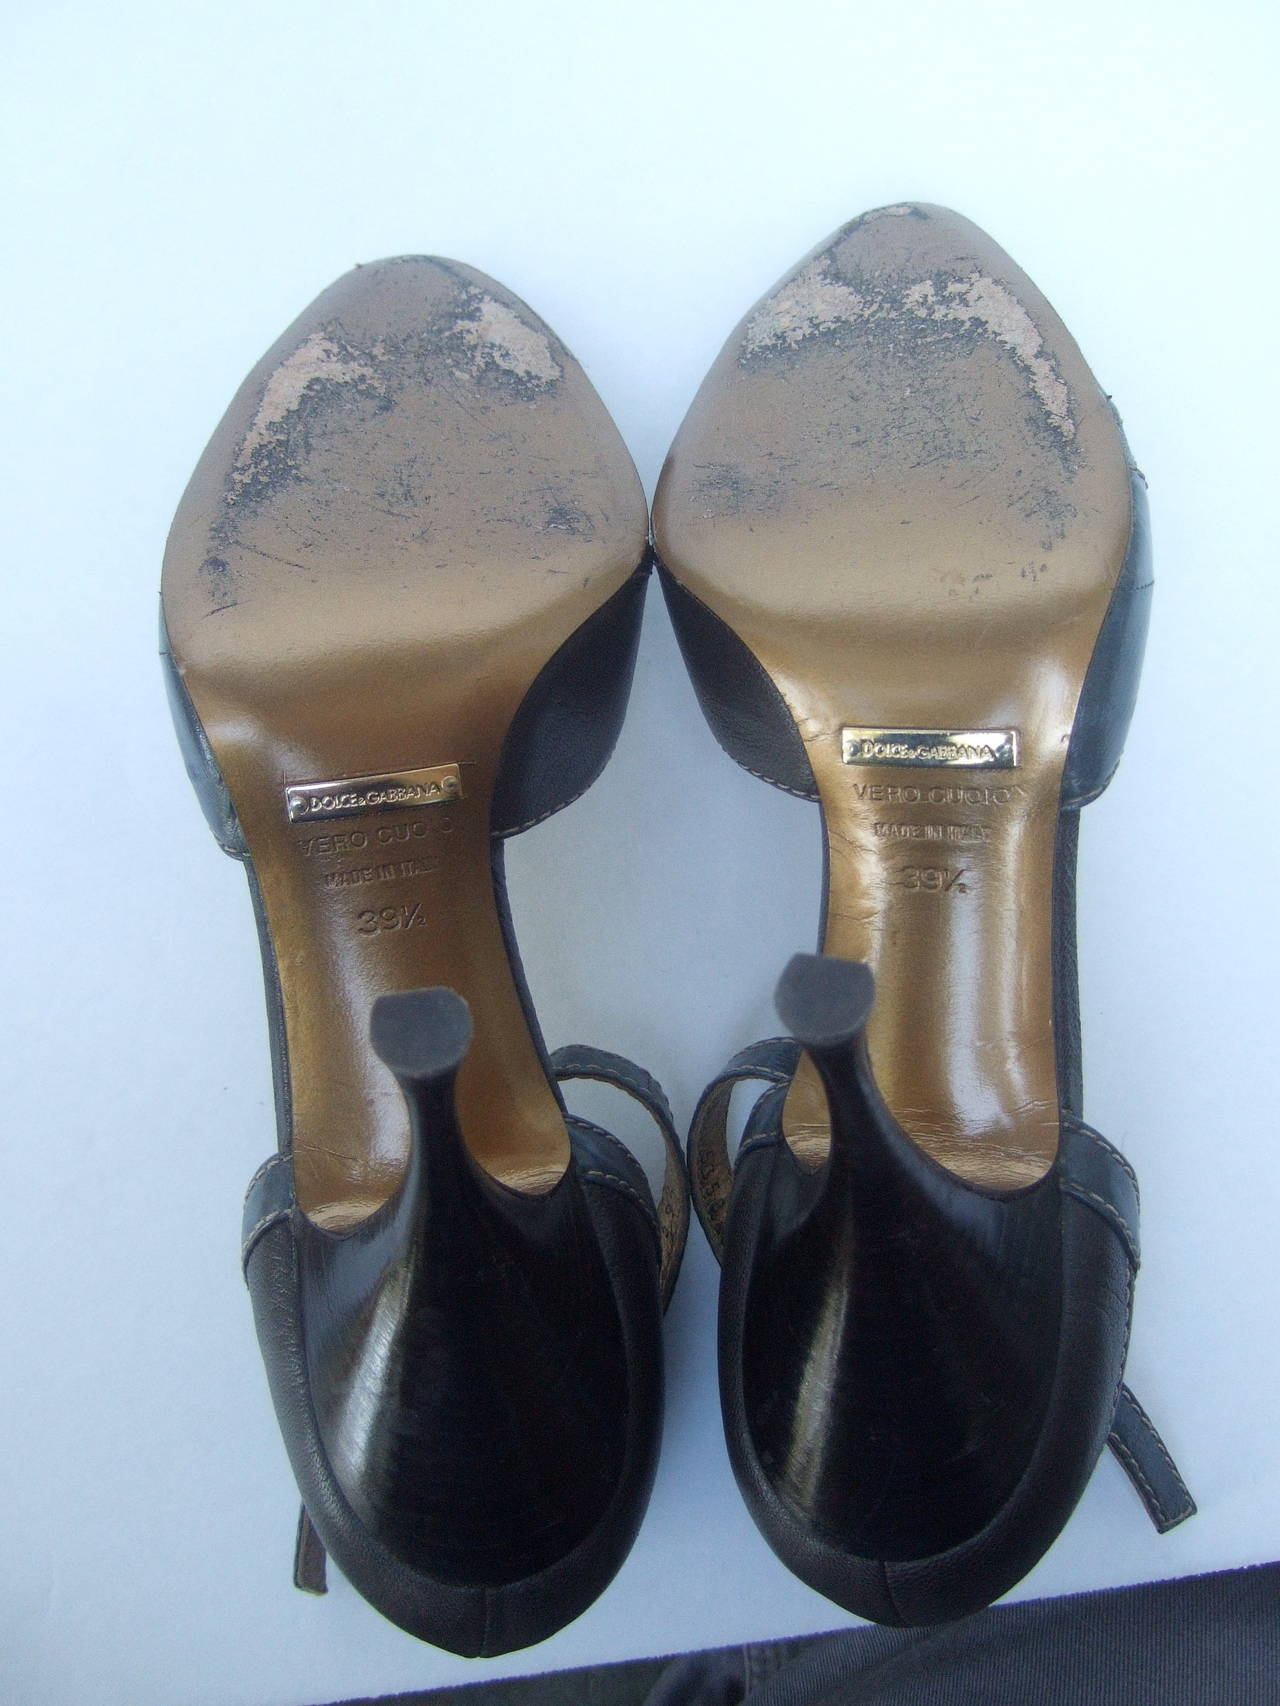 Dolce & Gabbana Gray & Brown Ankle Strap Shoes Size 39.5 Made in Italy For Sale 4